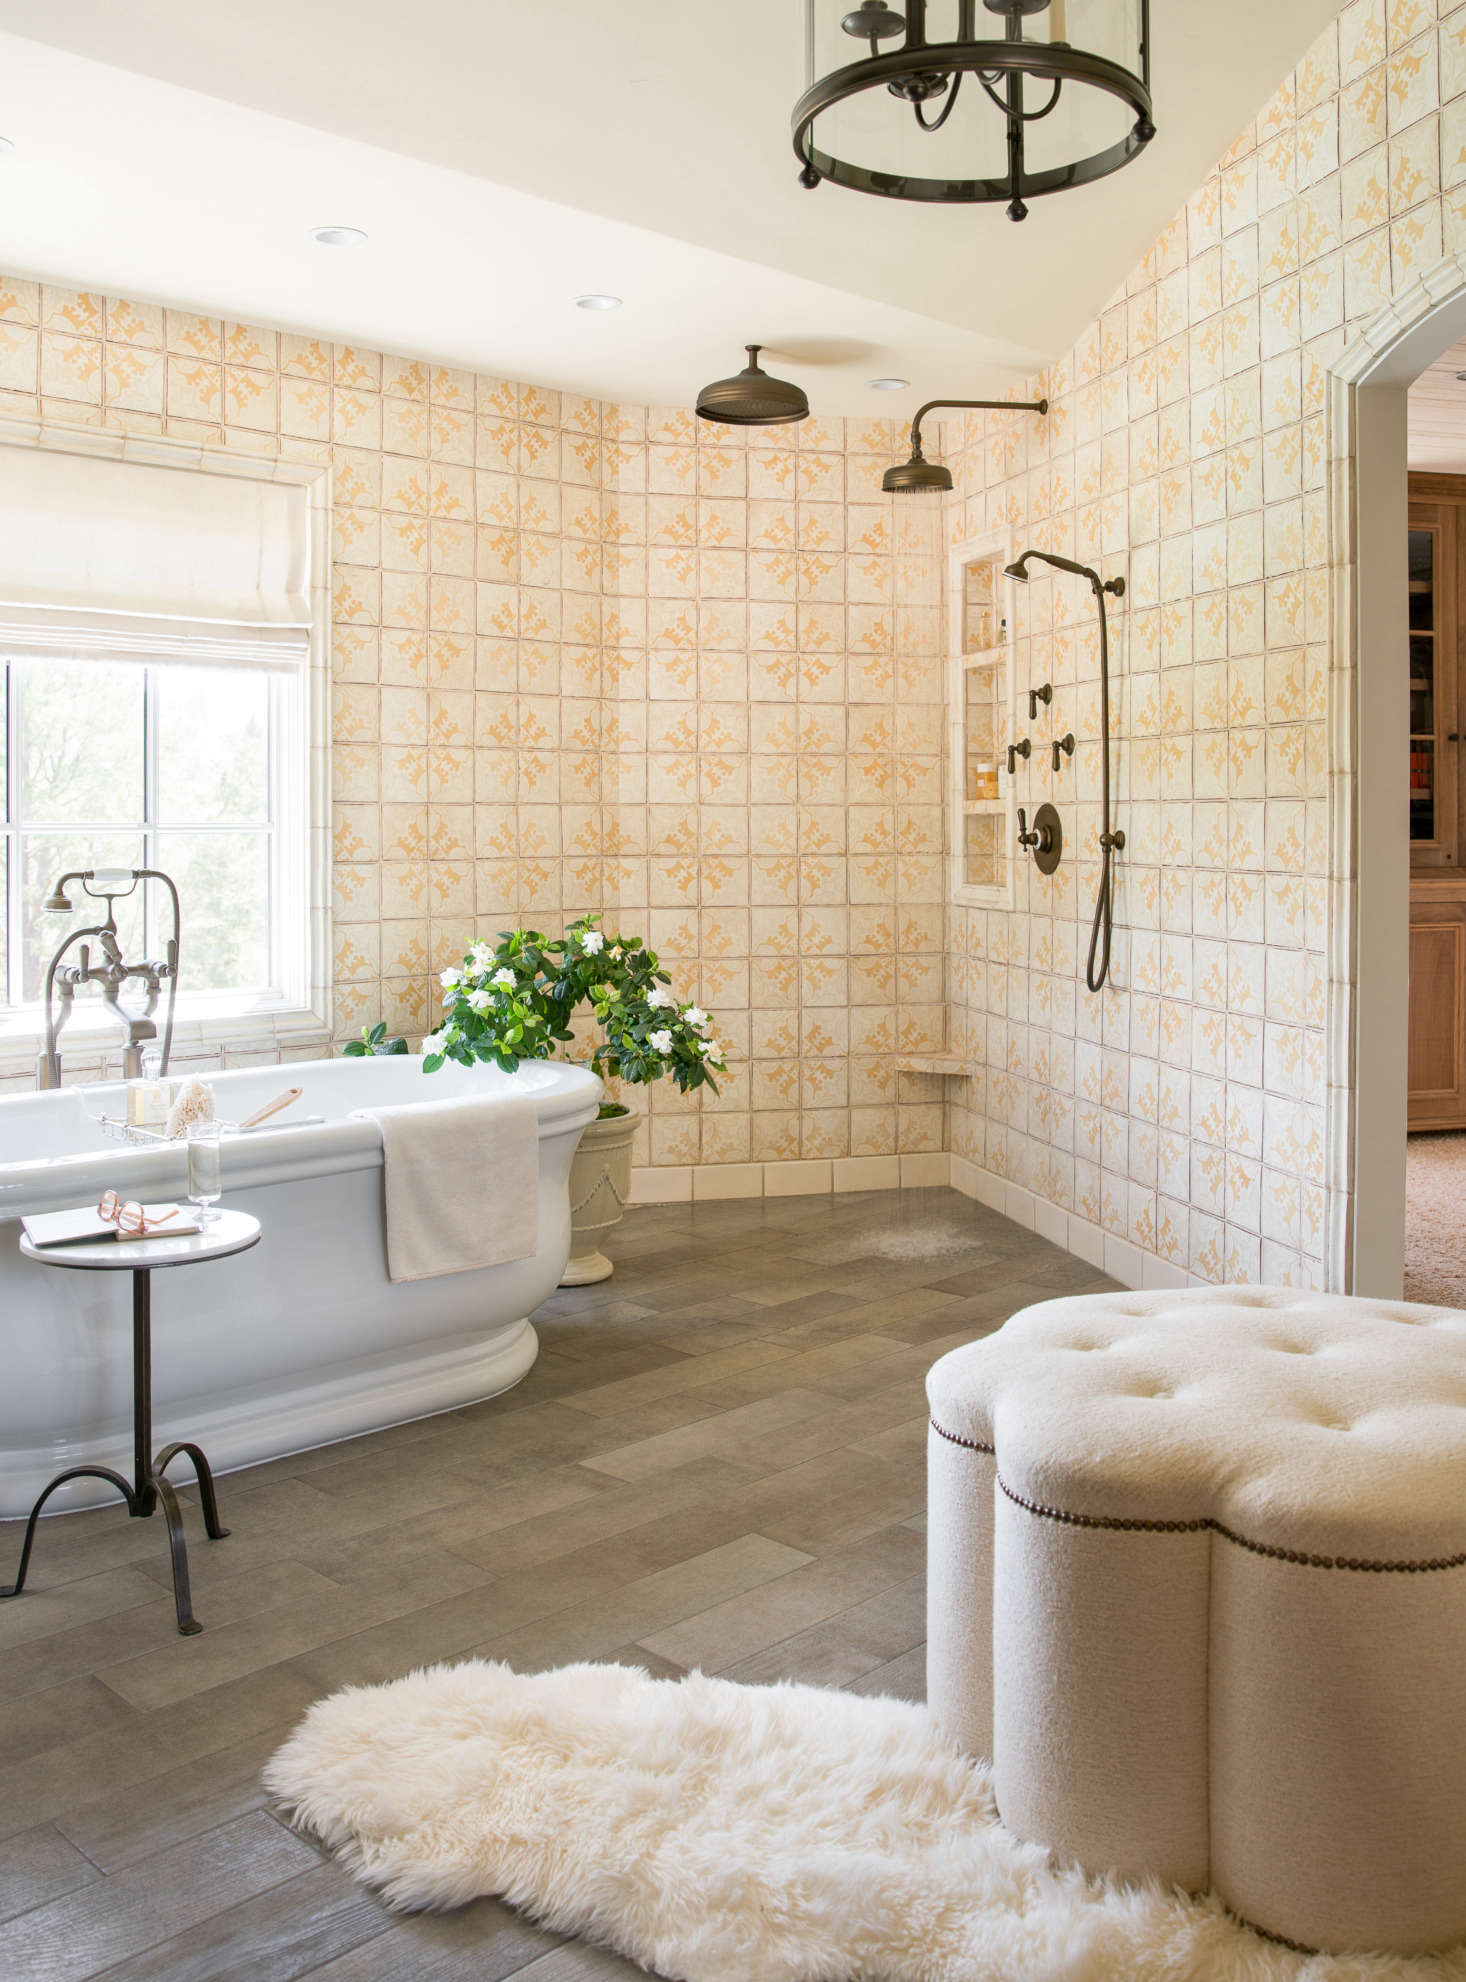 Open shower feature in master bath with yellow patterned tile on the walls. Thomas Kuoh Photography.